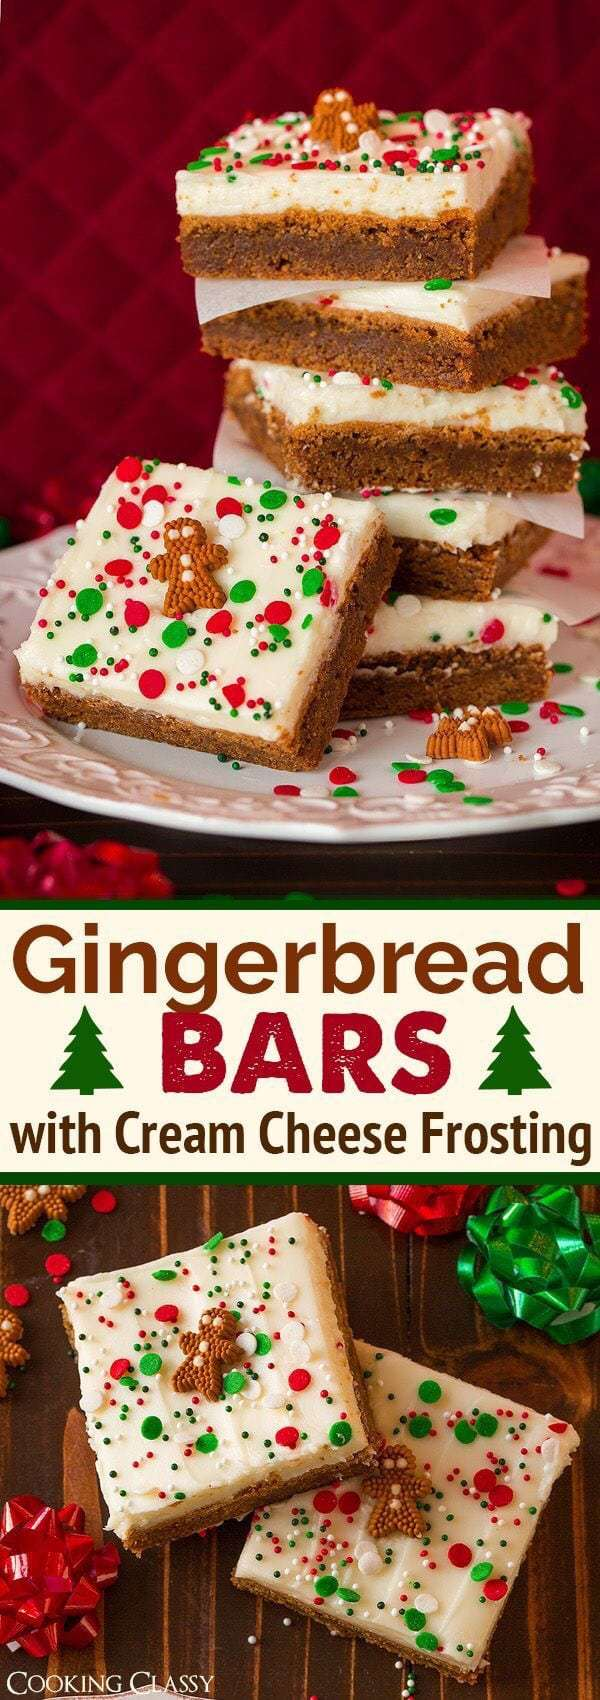 Christmas Cookies: Gingerbread Bars with Cream Cheese Frosting